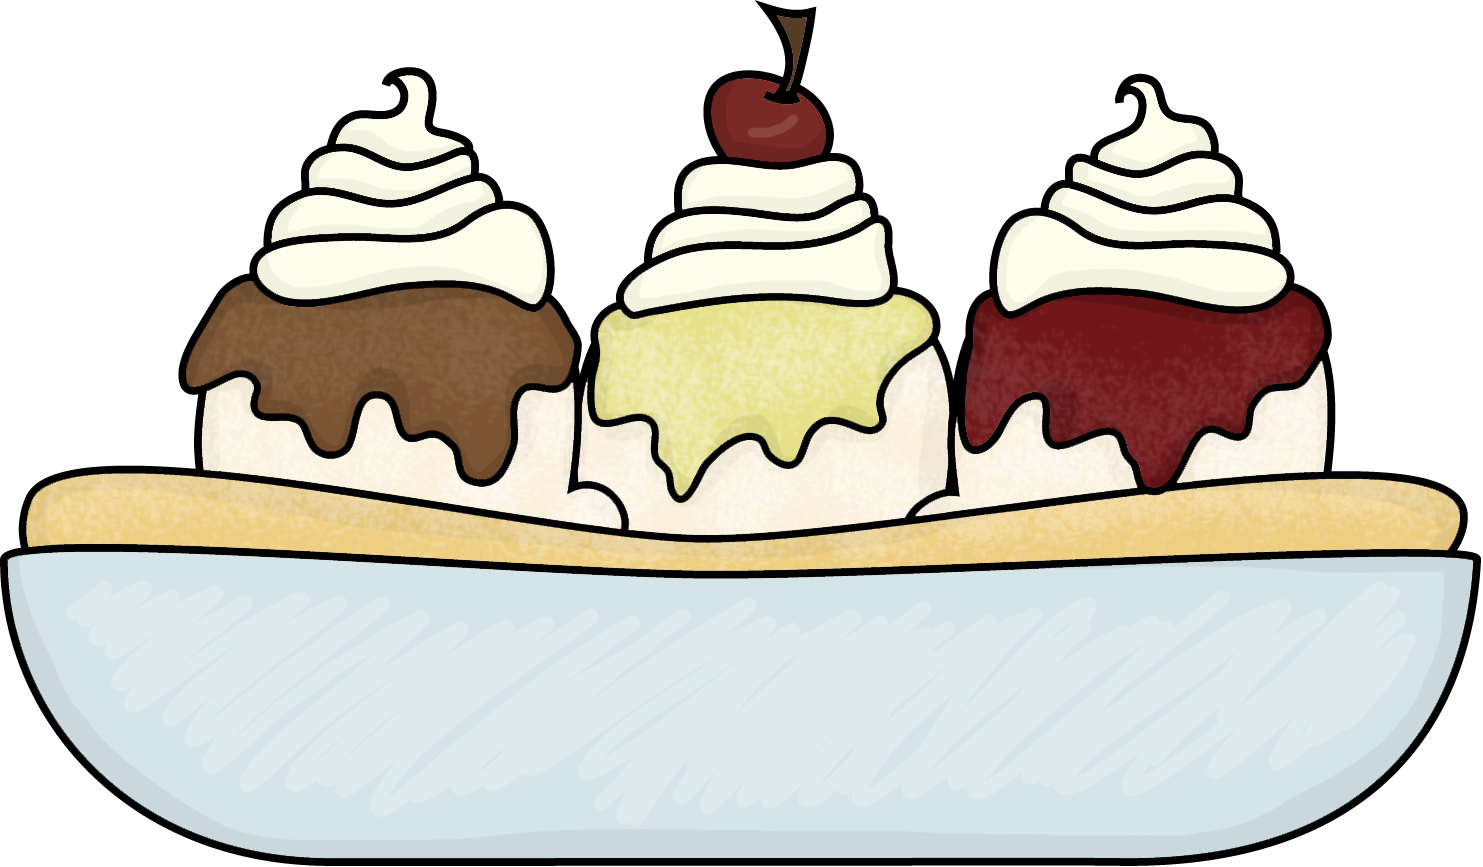 1483x867 Bowl Of Ice Cream Clipart Black And White Free